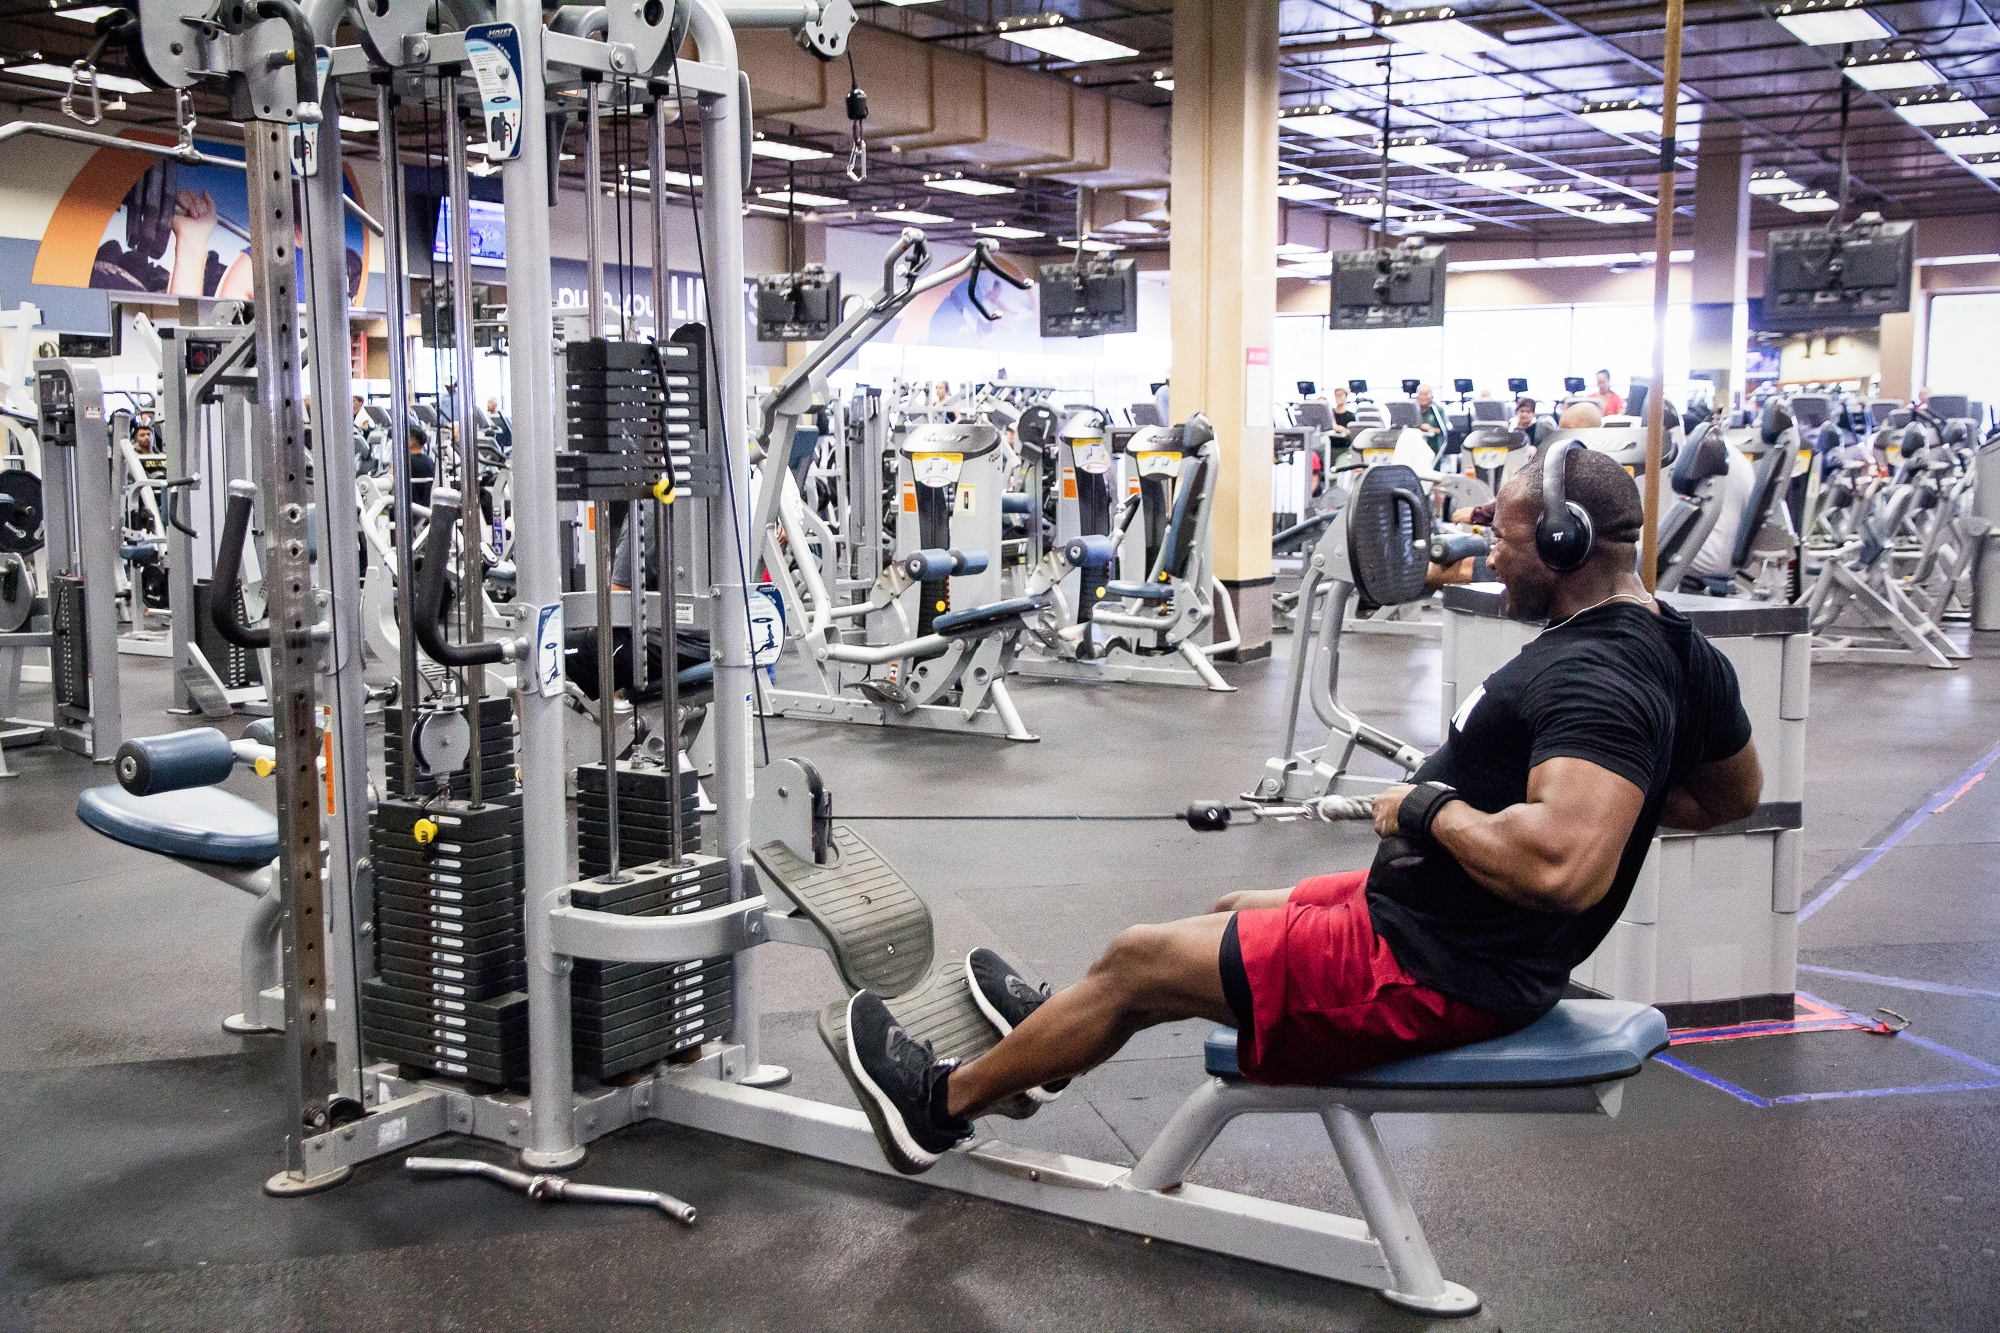 Personal Training - Change-iz Fitness One on One personal training is one of a kind. Our training allows you to accomplish your goals in ways you can't with other training programs.